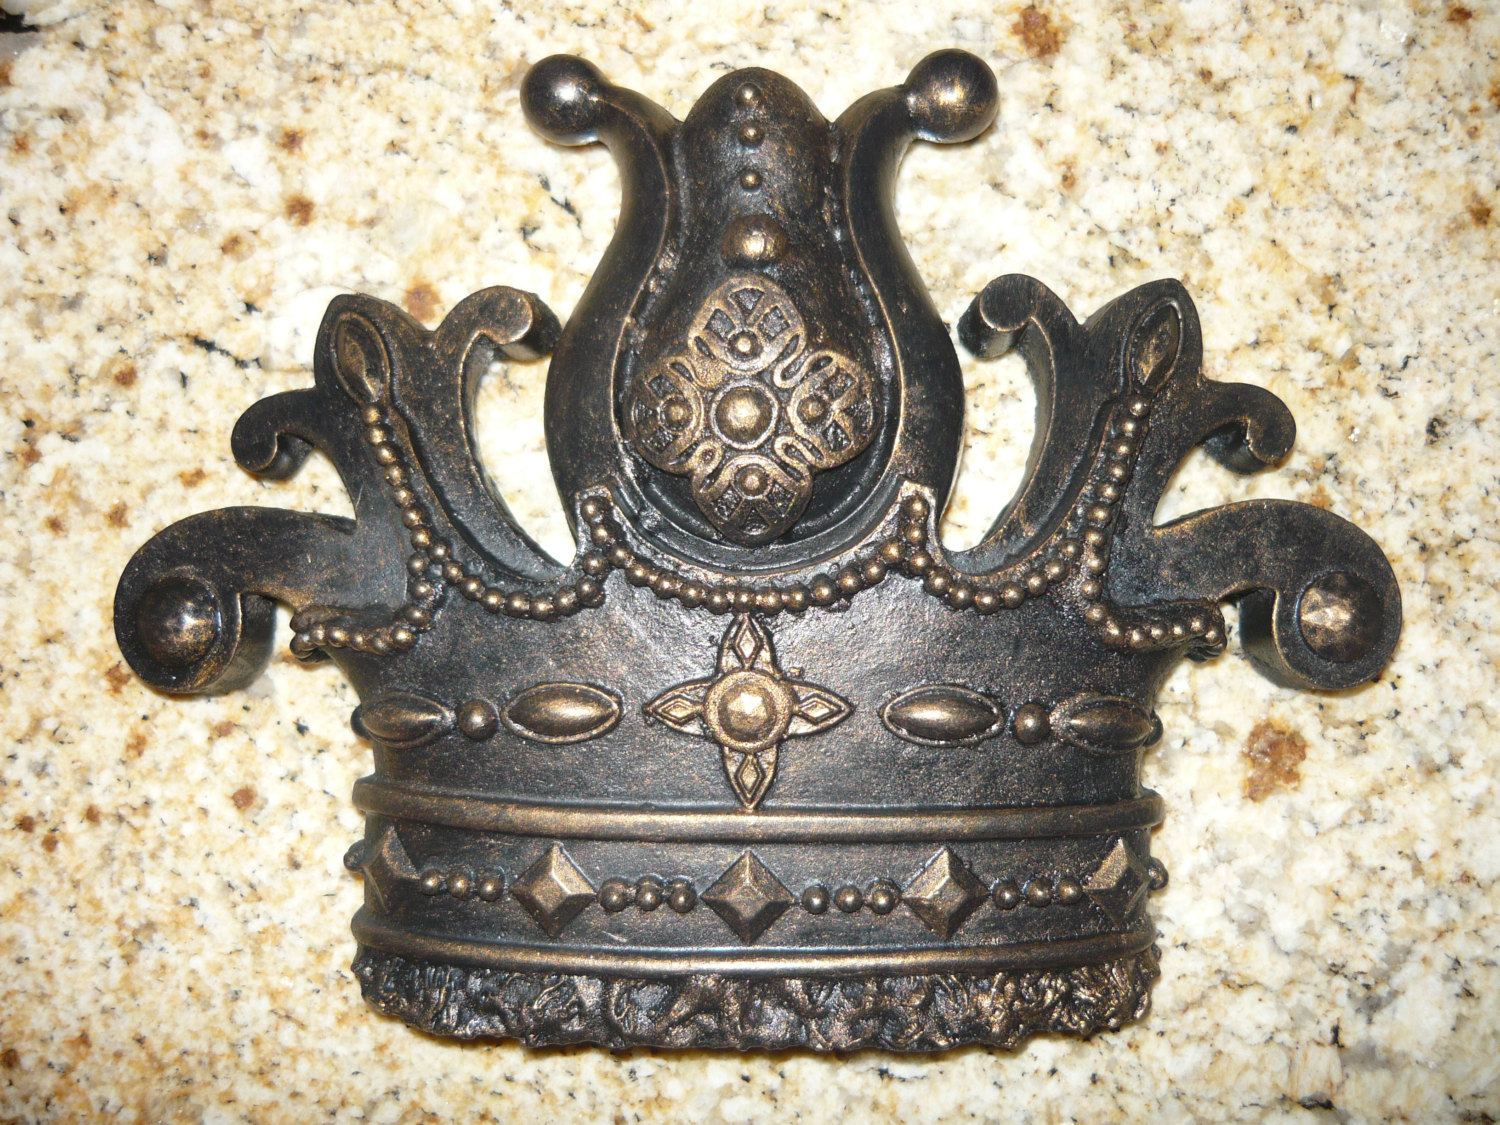 King And Queen Crown Wall Decor royal crown wall plaque / wall decor medieval old world style